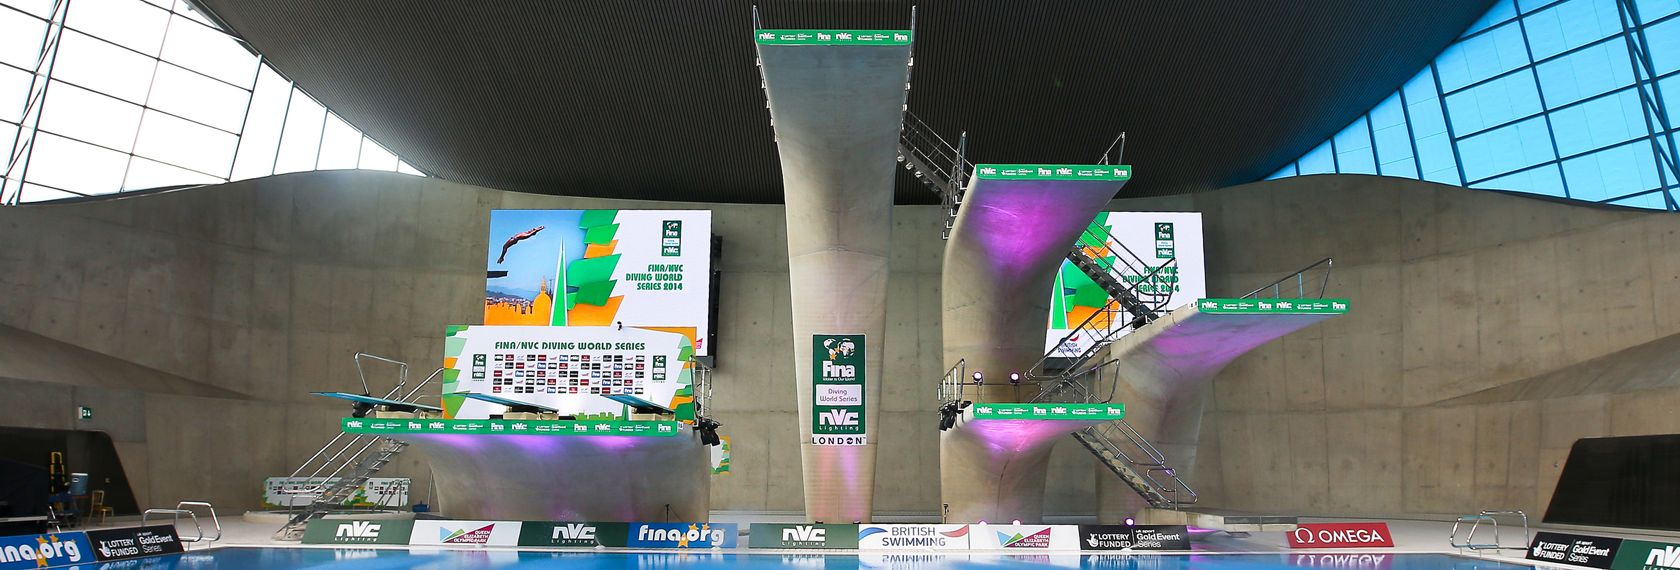 fina_diving_world_series_london_2014.jpg